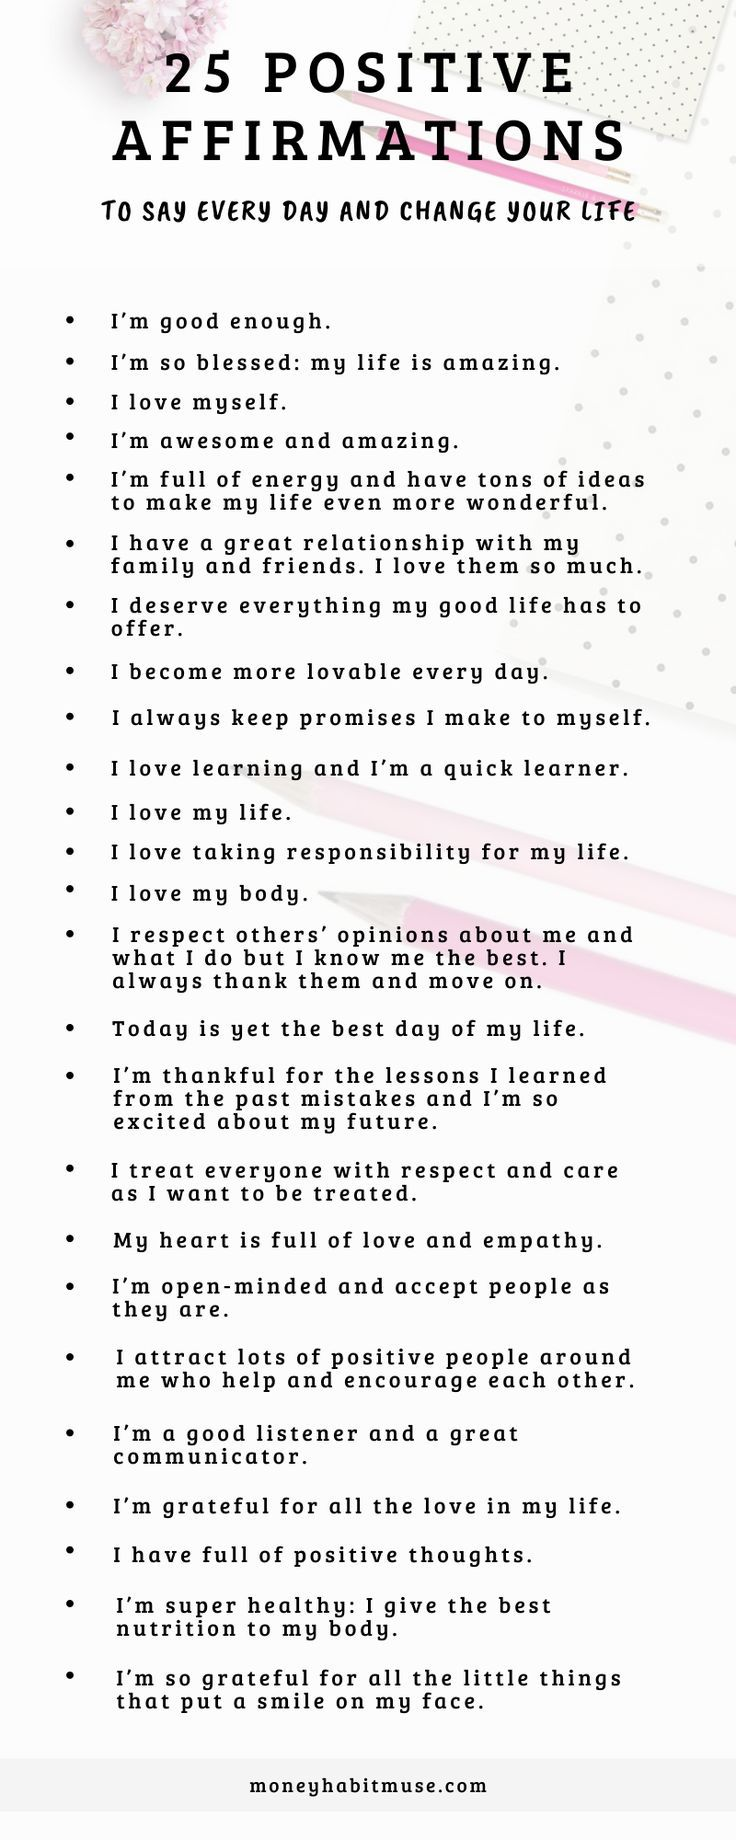 25 Positive Affirmations to Say Every day (and Change Your Life)